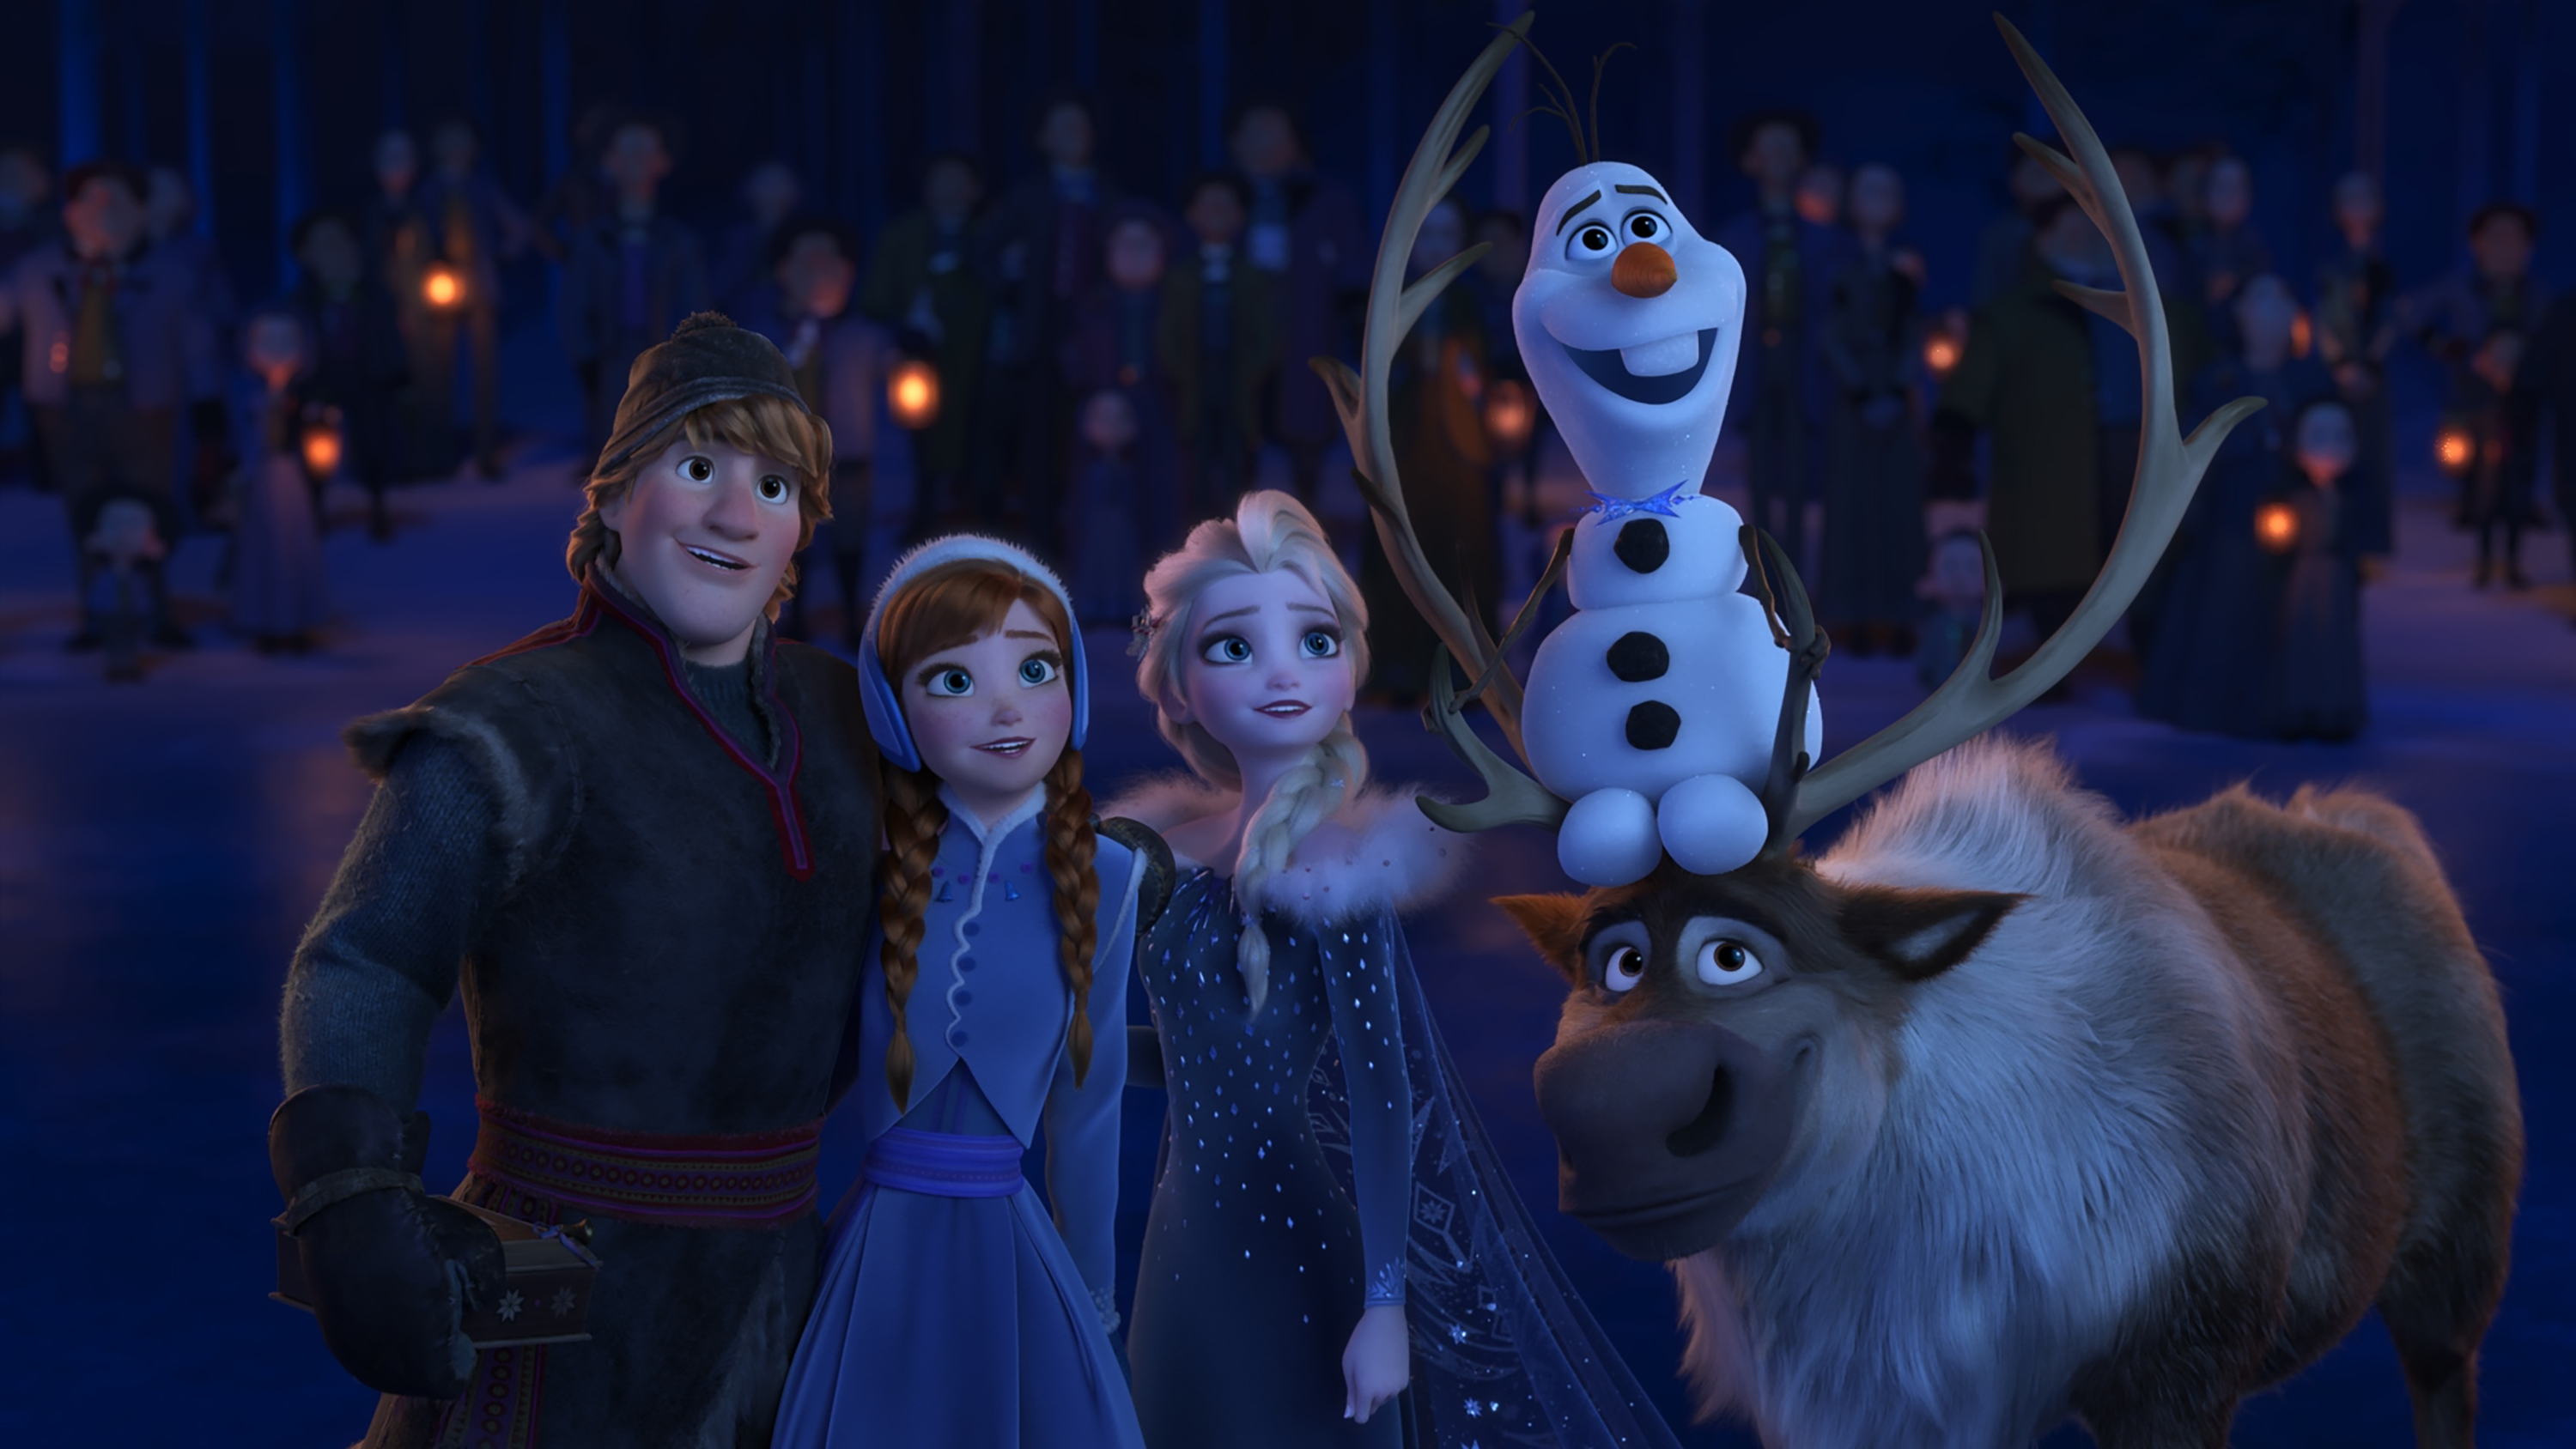 Olafs Frozen Adventure Full HD Wallpaper And Background Image